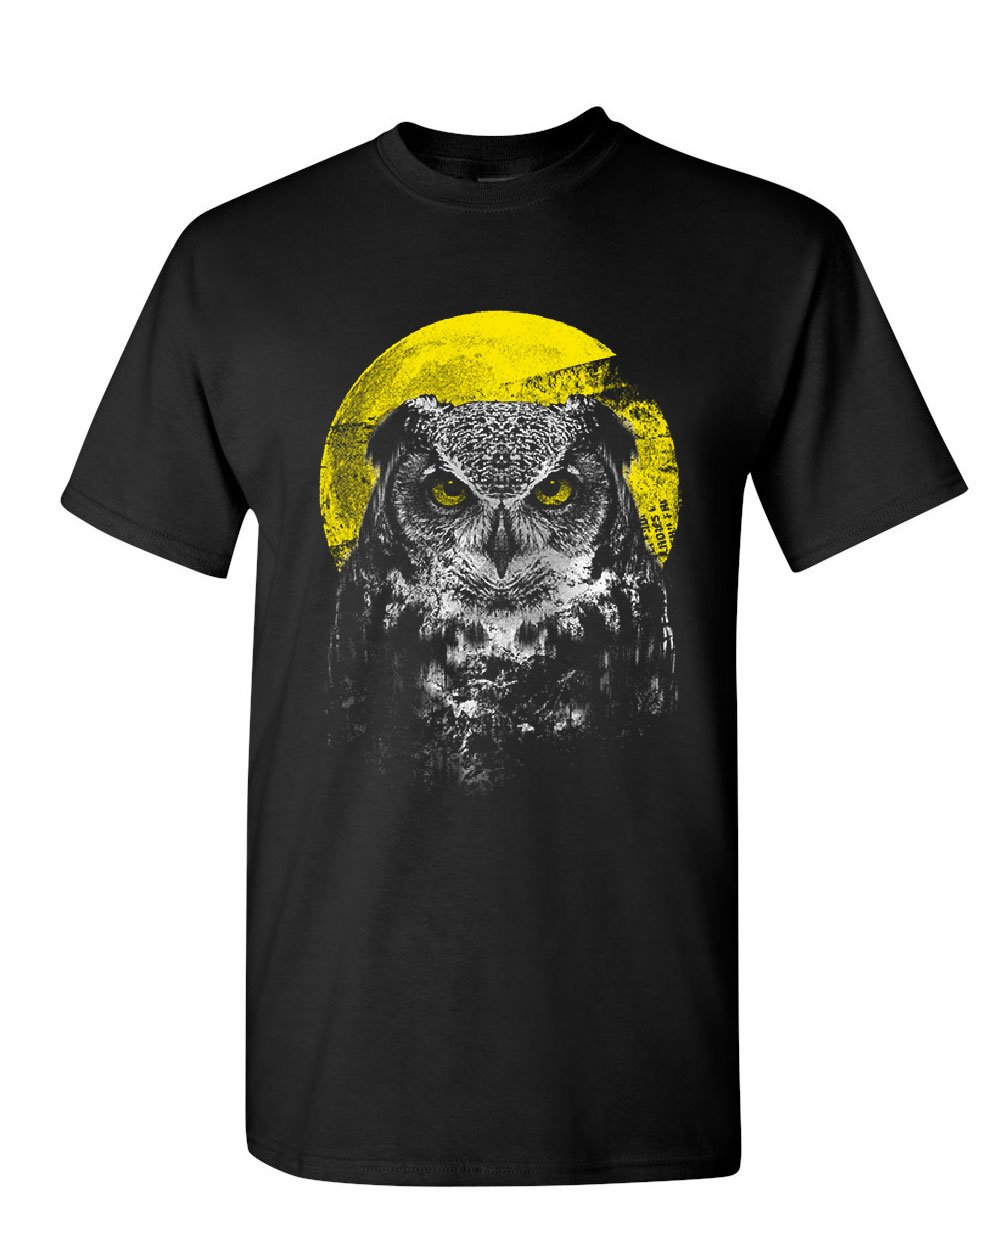 Night Owl <font><b>T</b></font>-<font><b>Shirt</b></font> Bird Nature Wildlife <font><b>Wilderness</b></font> Wisdom Moon Mens Tee <font><b>Shirt</b></font> Cartoon <font><b>t</b></font> <font><b>shirt</b></font> men Unisex New Fashion tshirt image